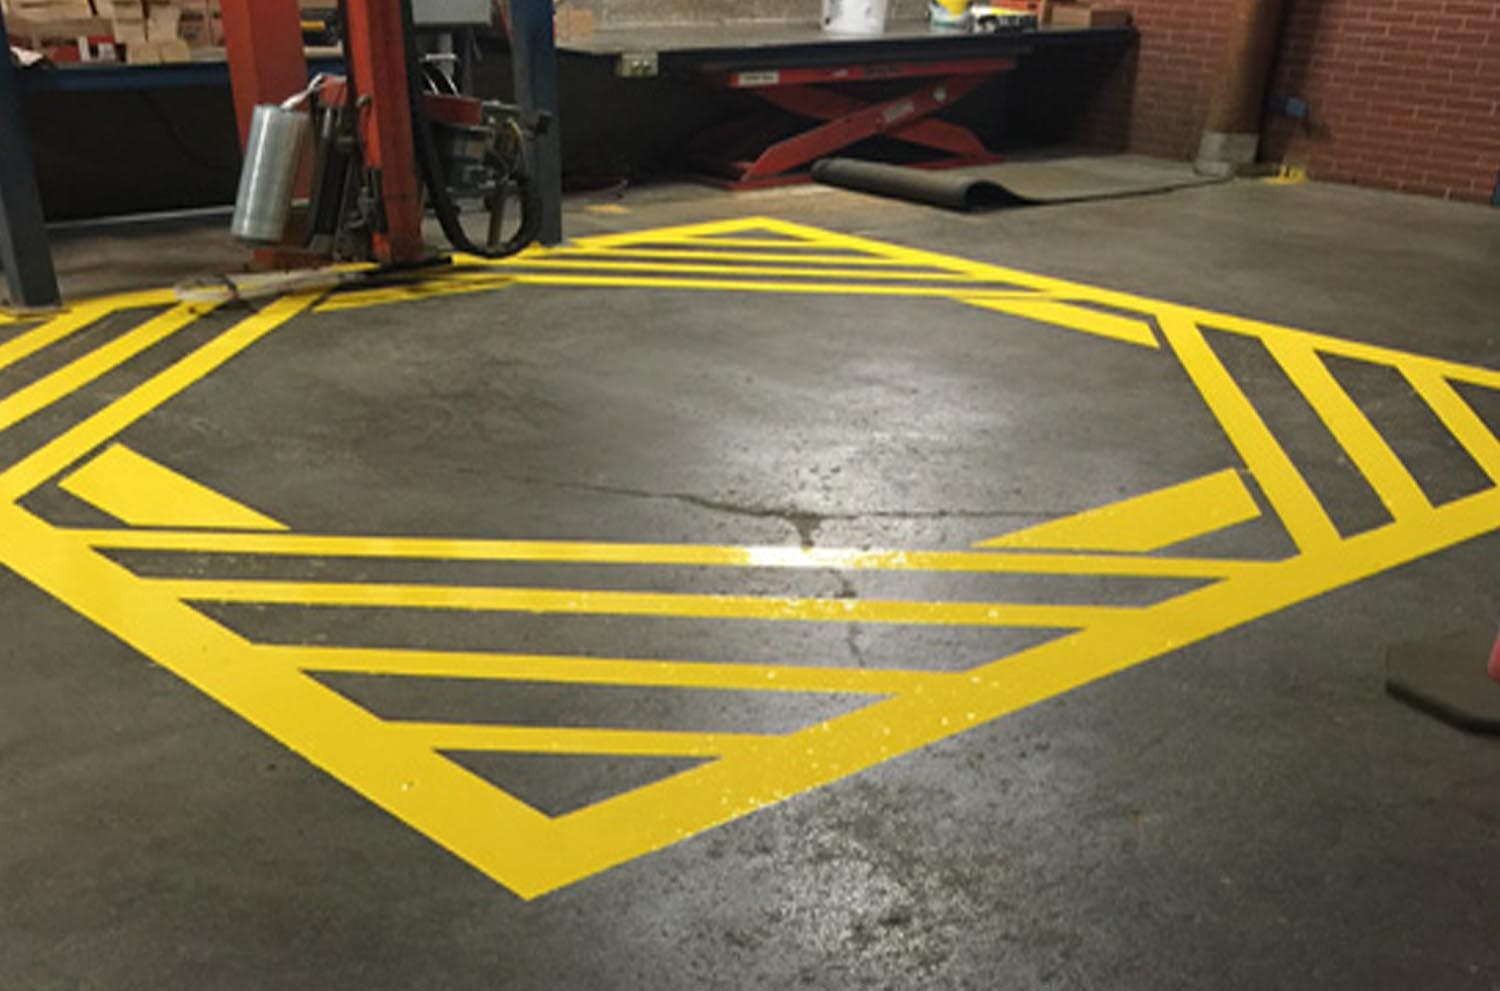 Pallet wrapper caution floor marking